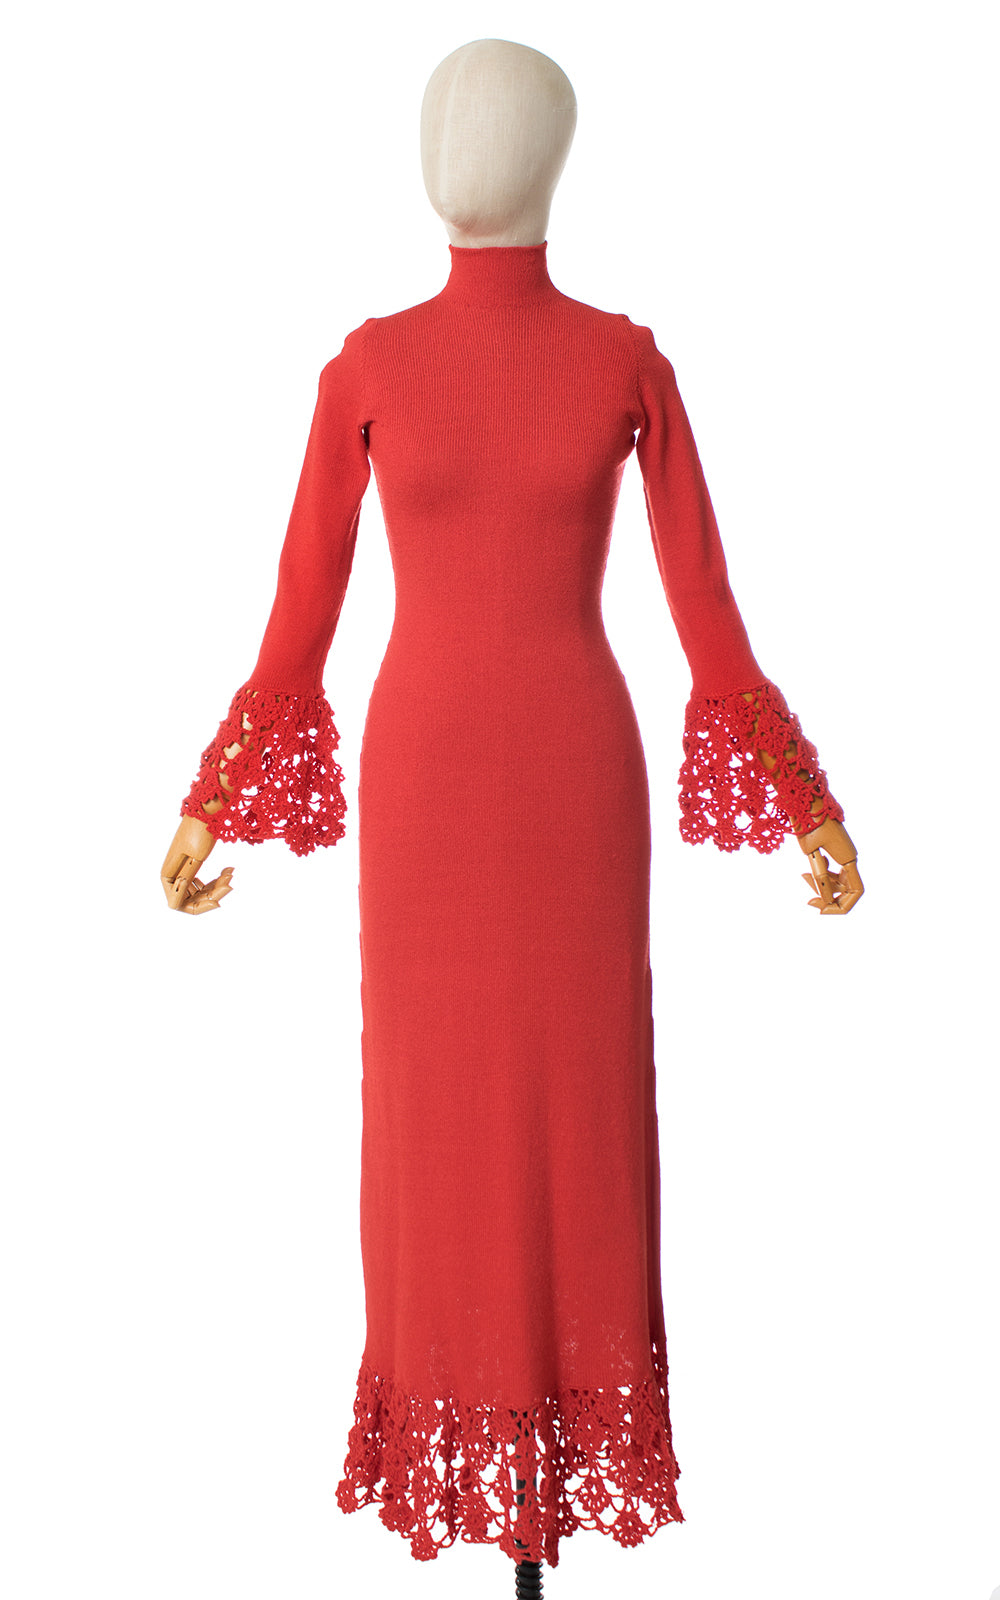 1960s Made Gerrard Knit Maxi Dress